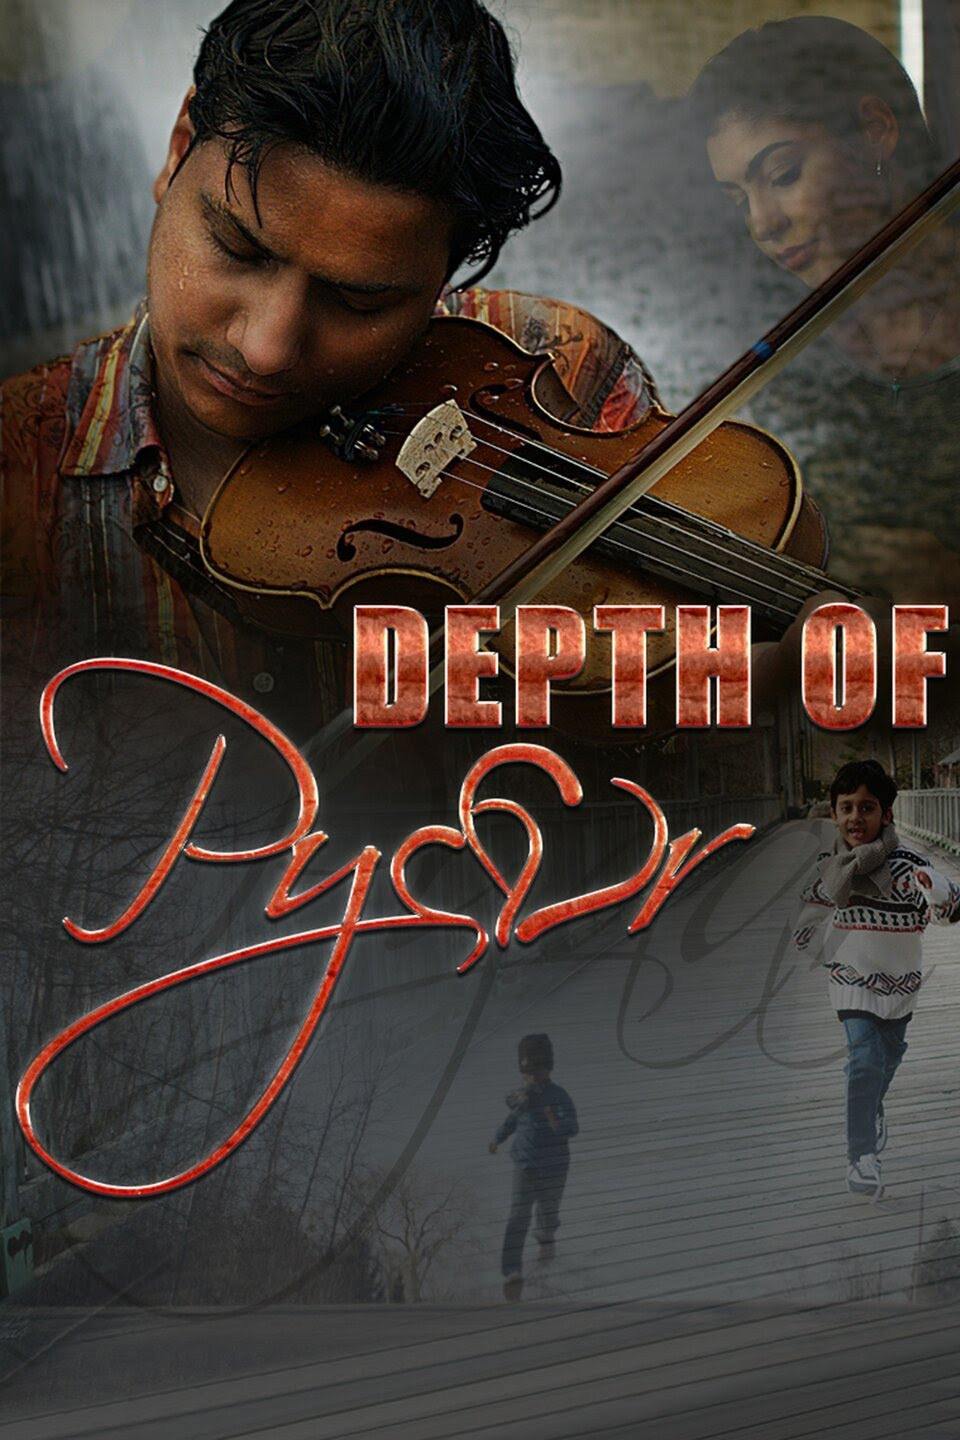 Hindi man playing violin; image of young woman in top corner; images of two young Hindi boys running happily